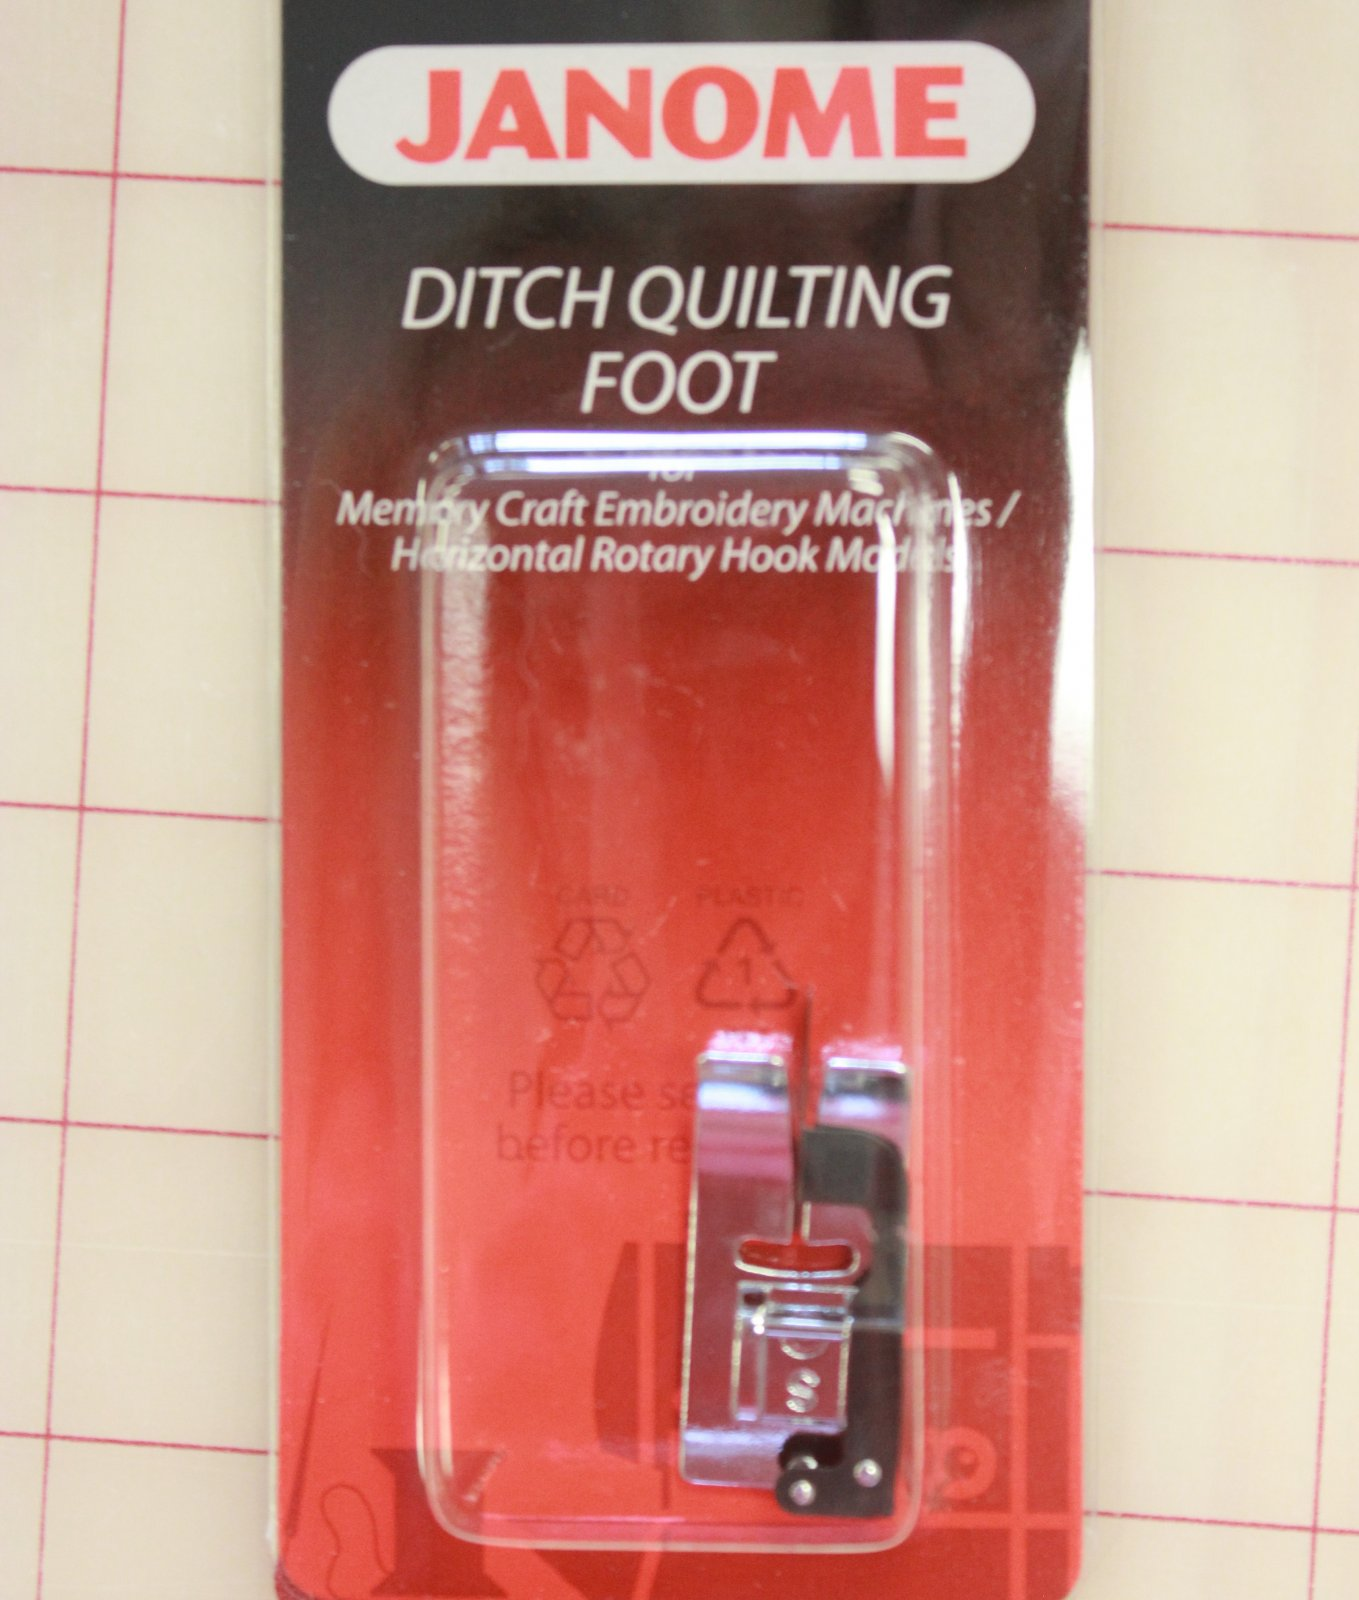 Ditch foot for 5 & 7mm machines